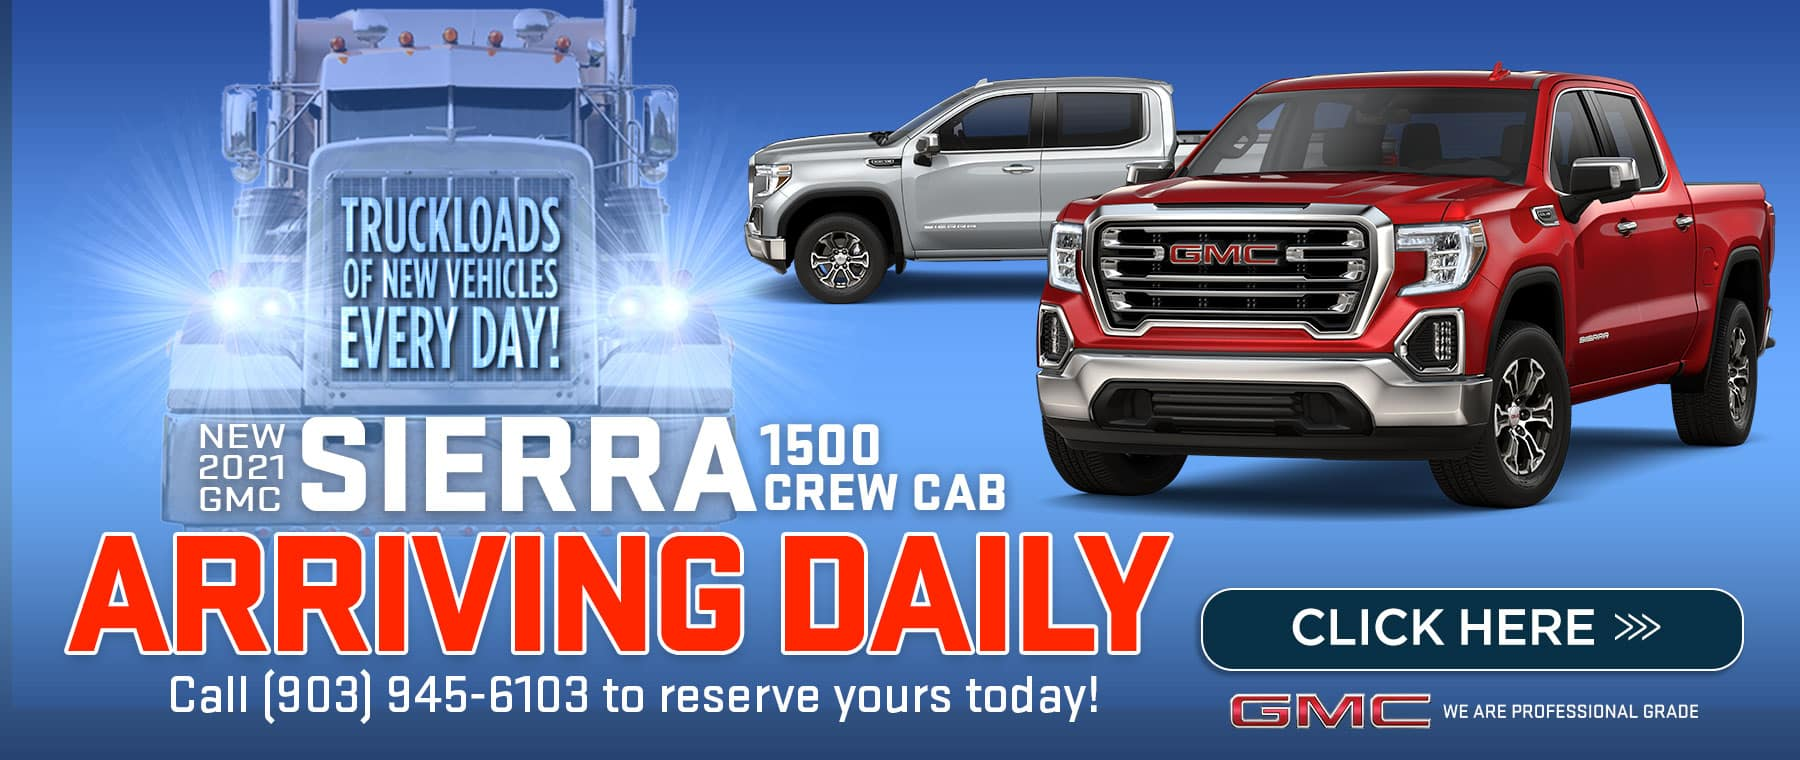 New 2021 Sierra 1500 Crew Cabs Arriving Daily